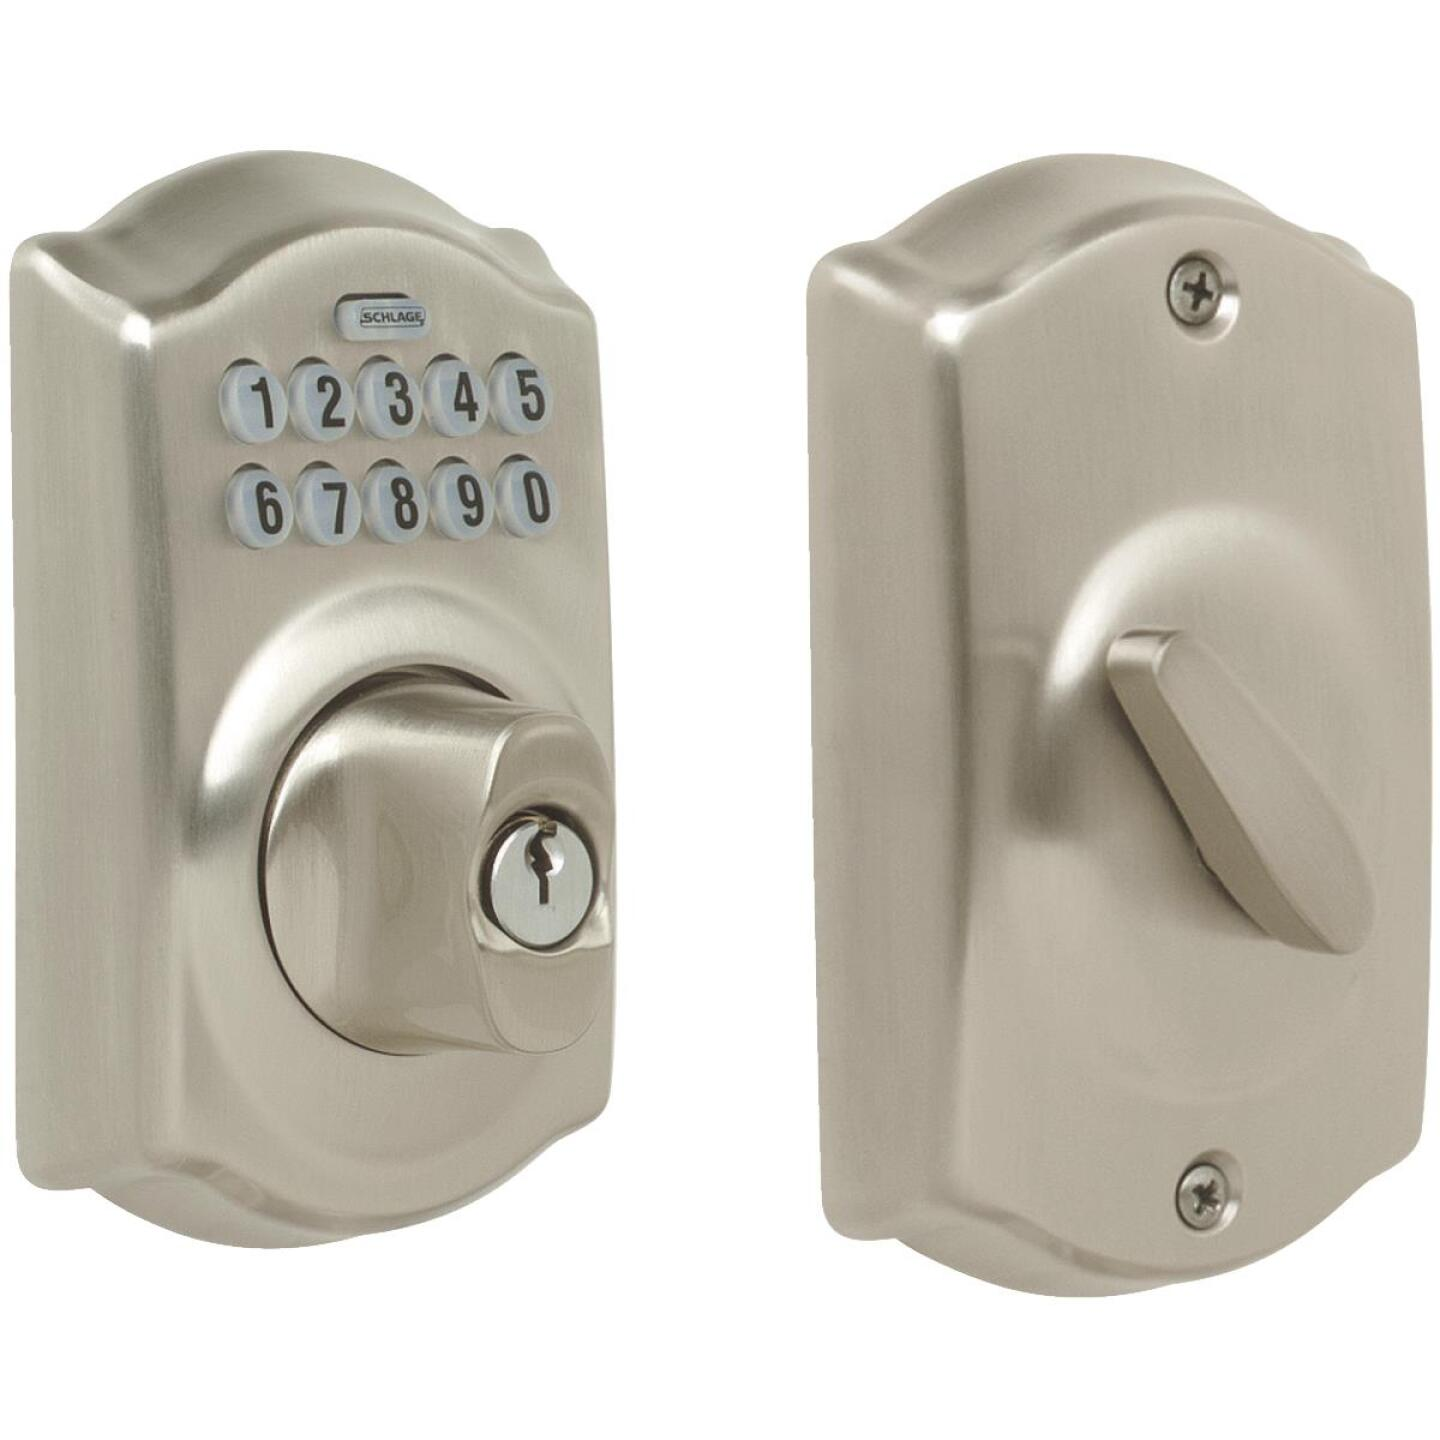 Schlage Keypad Satin Nickel Electronic Deadbolt Image 1